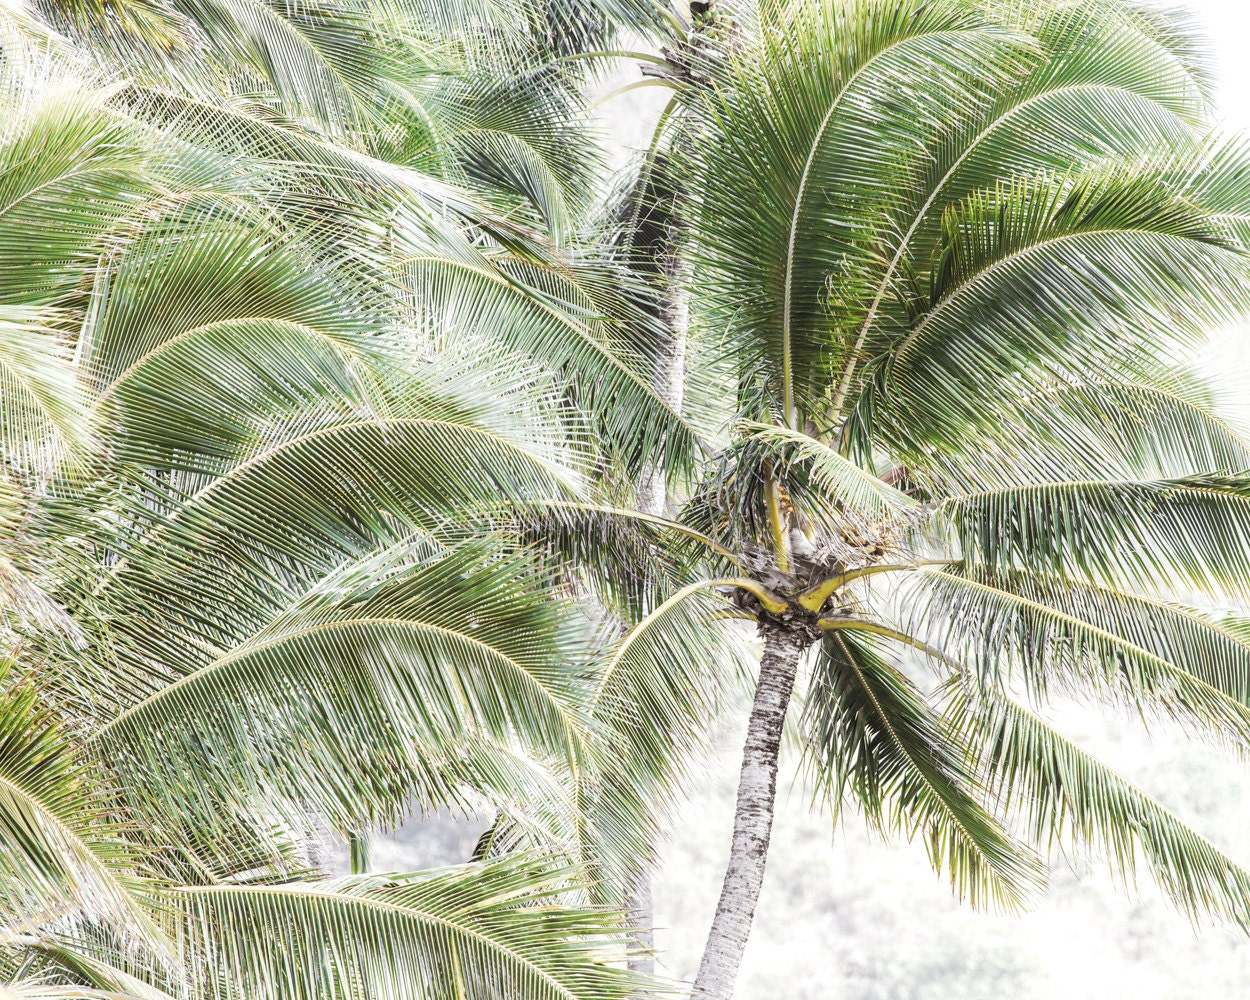 Https Colorpopphotoshop Wordpress Com 2016 02 15 Beach House Decor Green Nature Print Palm Tree Wall Decor Beach Casual Island Style Tropical Vibes Tropical Decor Tree Photography